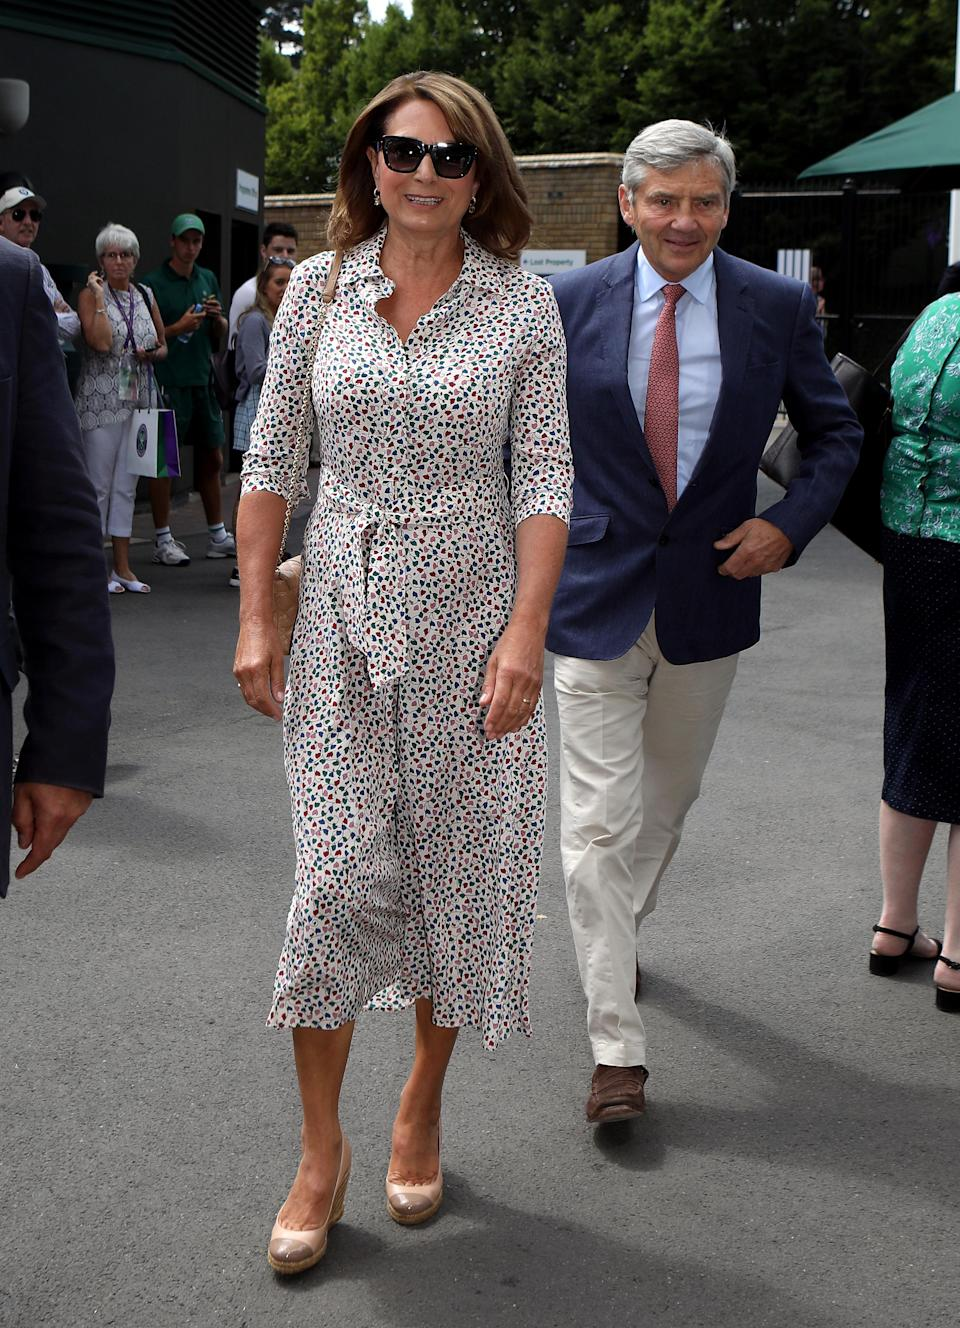 <p>Carole Middleton made her second appearance at Wimbledon 2018 on 11 July in a printed Max Mara shirt dress. Another twinning look for mother and daughter? <em>[Photo: PA] </em> </p>